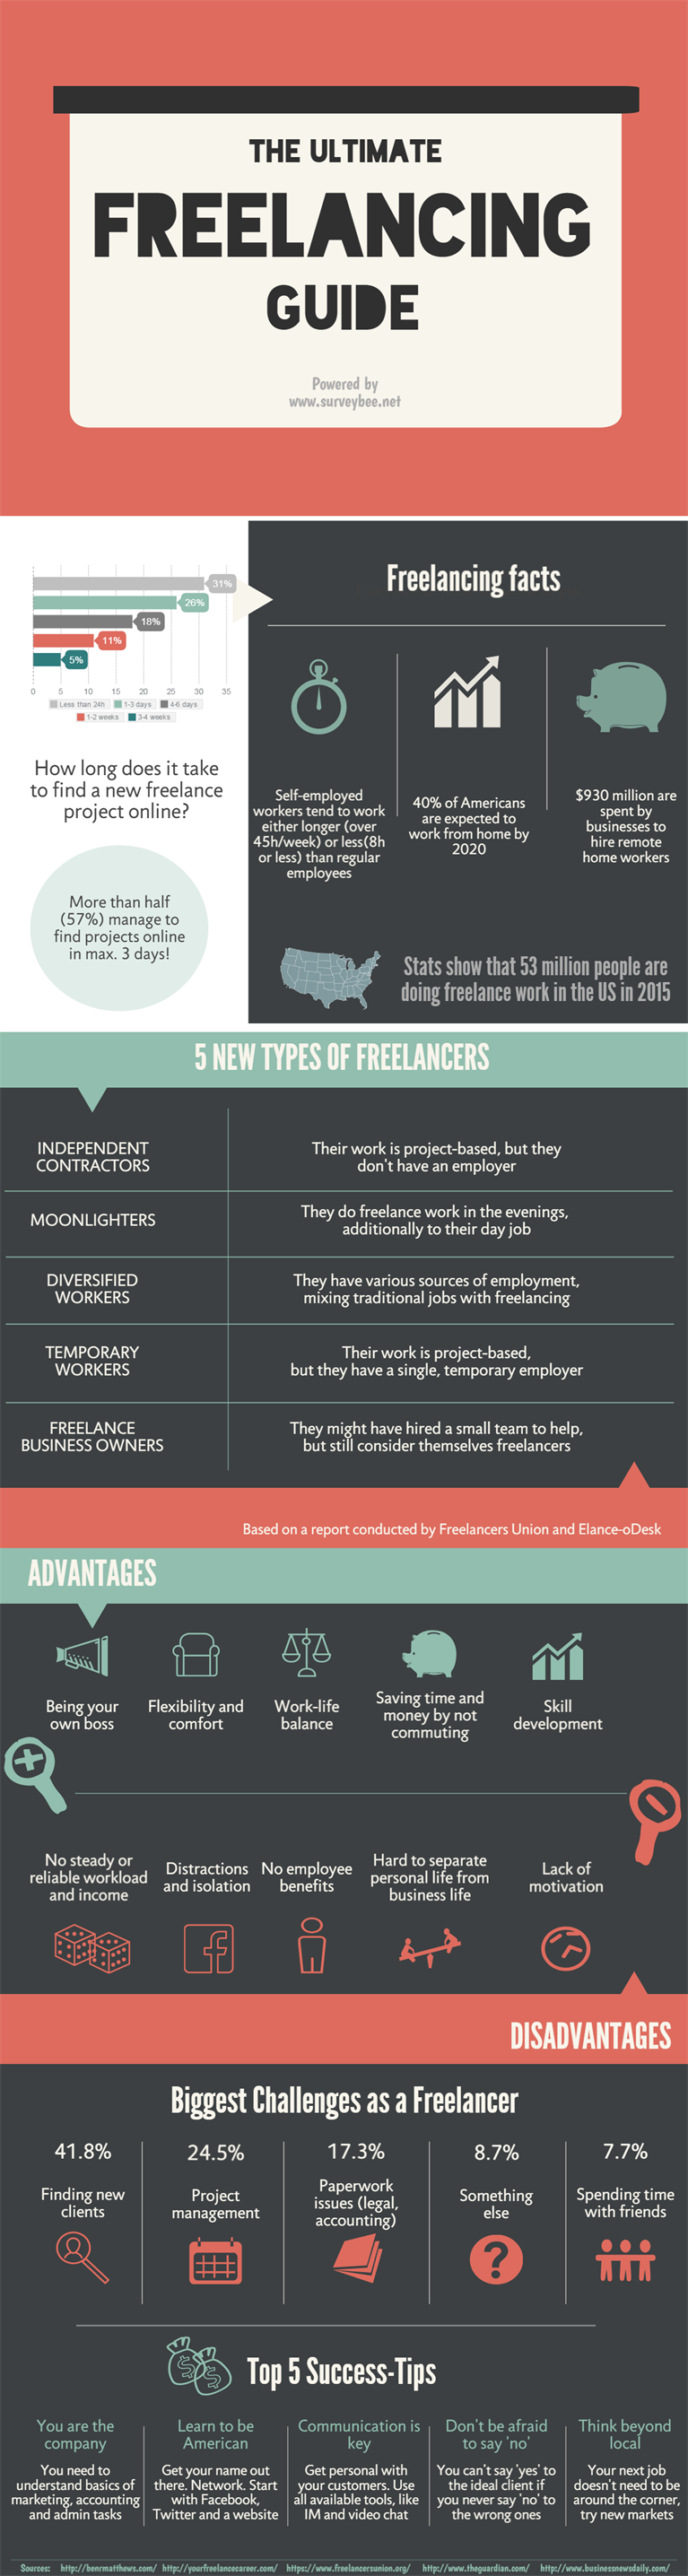 The-Ultimate-Freelancing-Guide-infographic